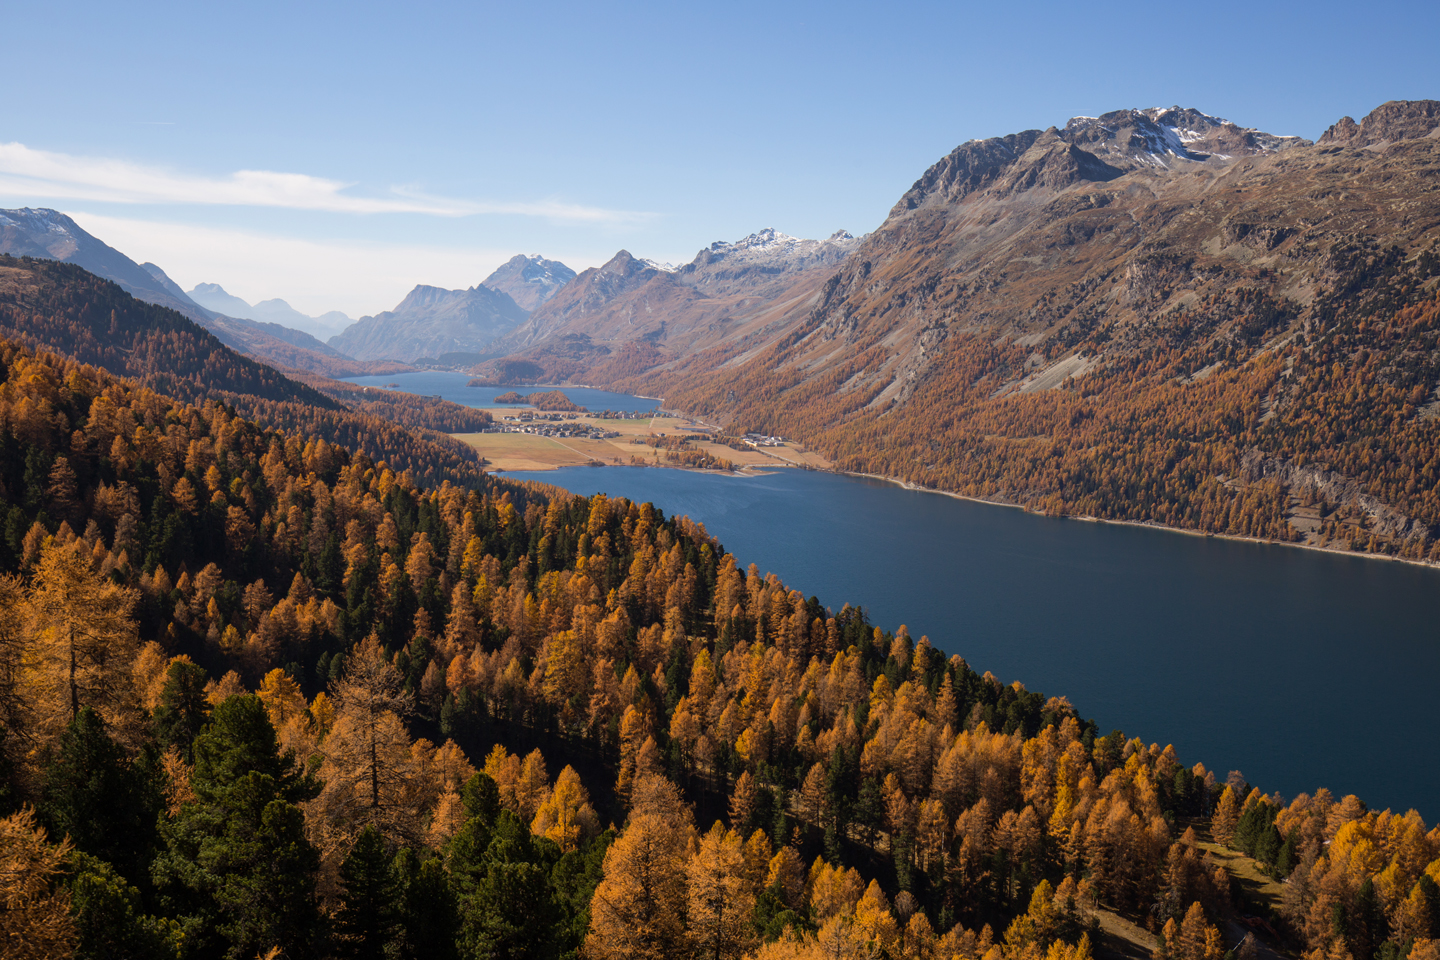 View from the Corvatsch Gondola in late autumn